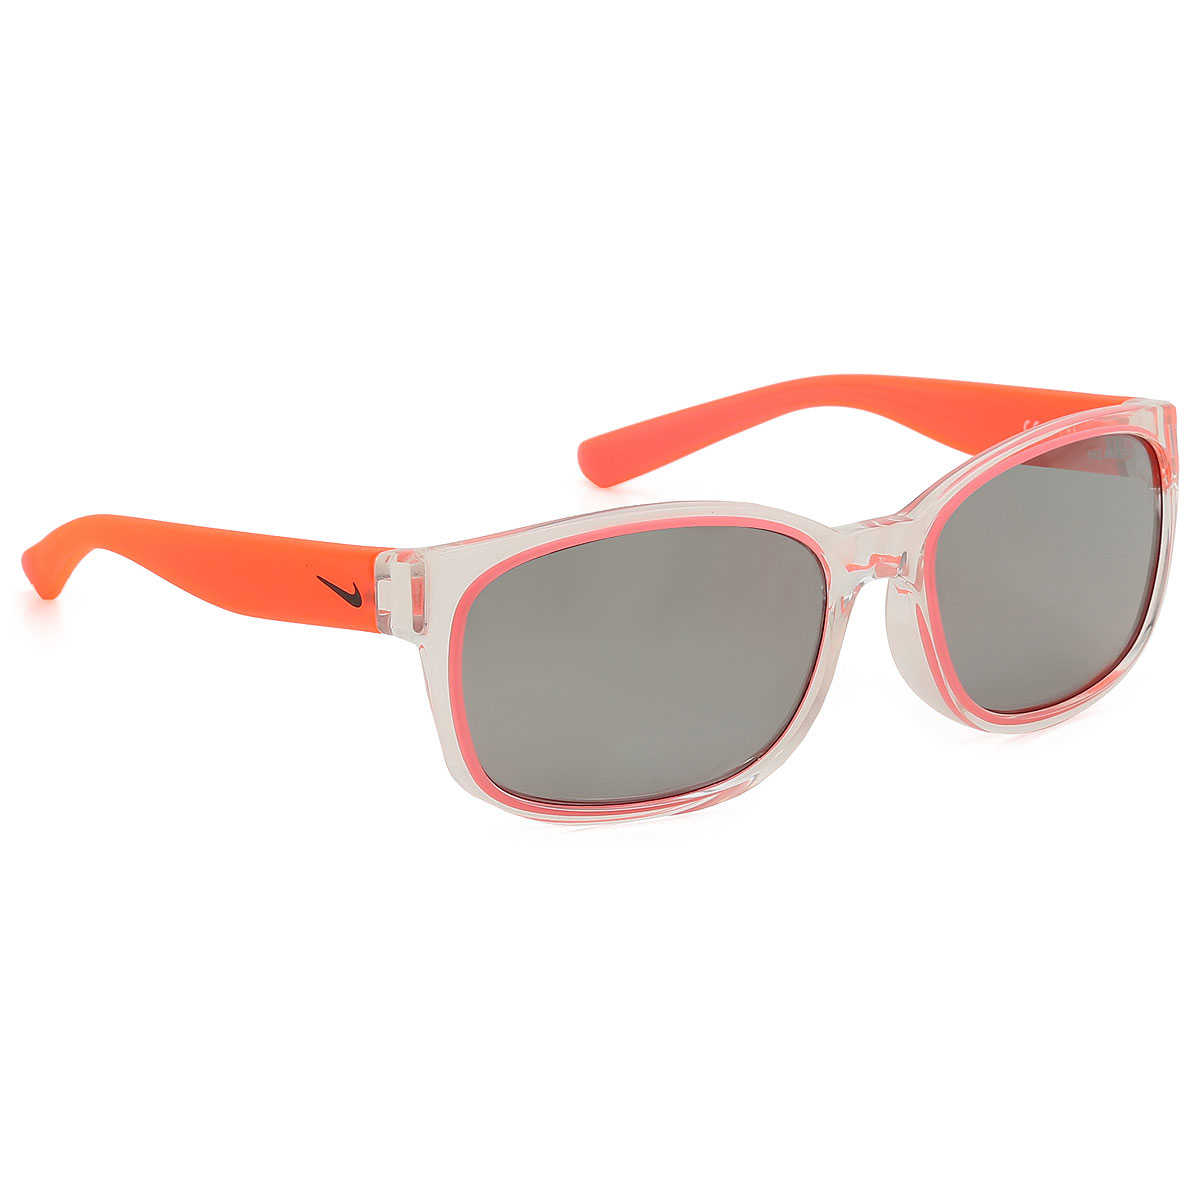 Nike Kids Sunglasses for Girls On Sale Fluo Orange SE - GOOFASH